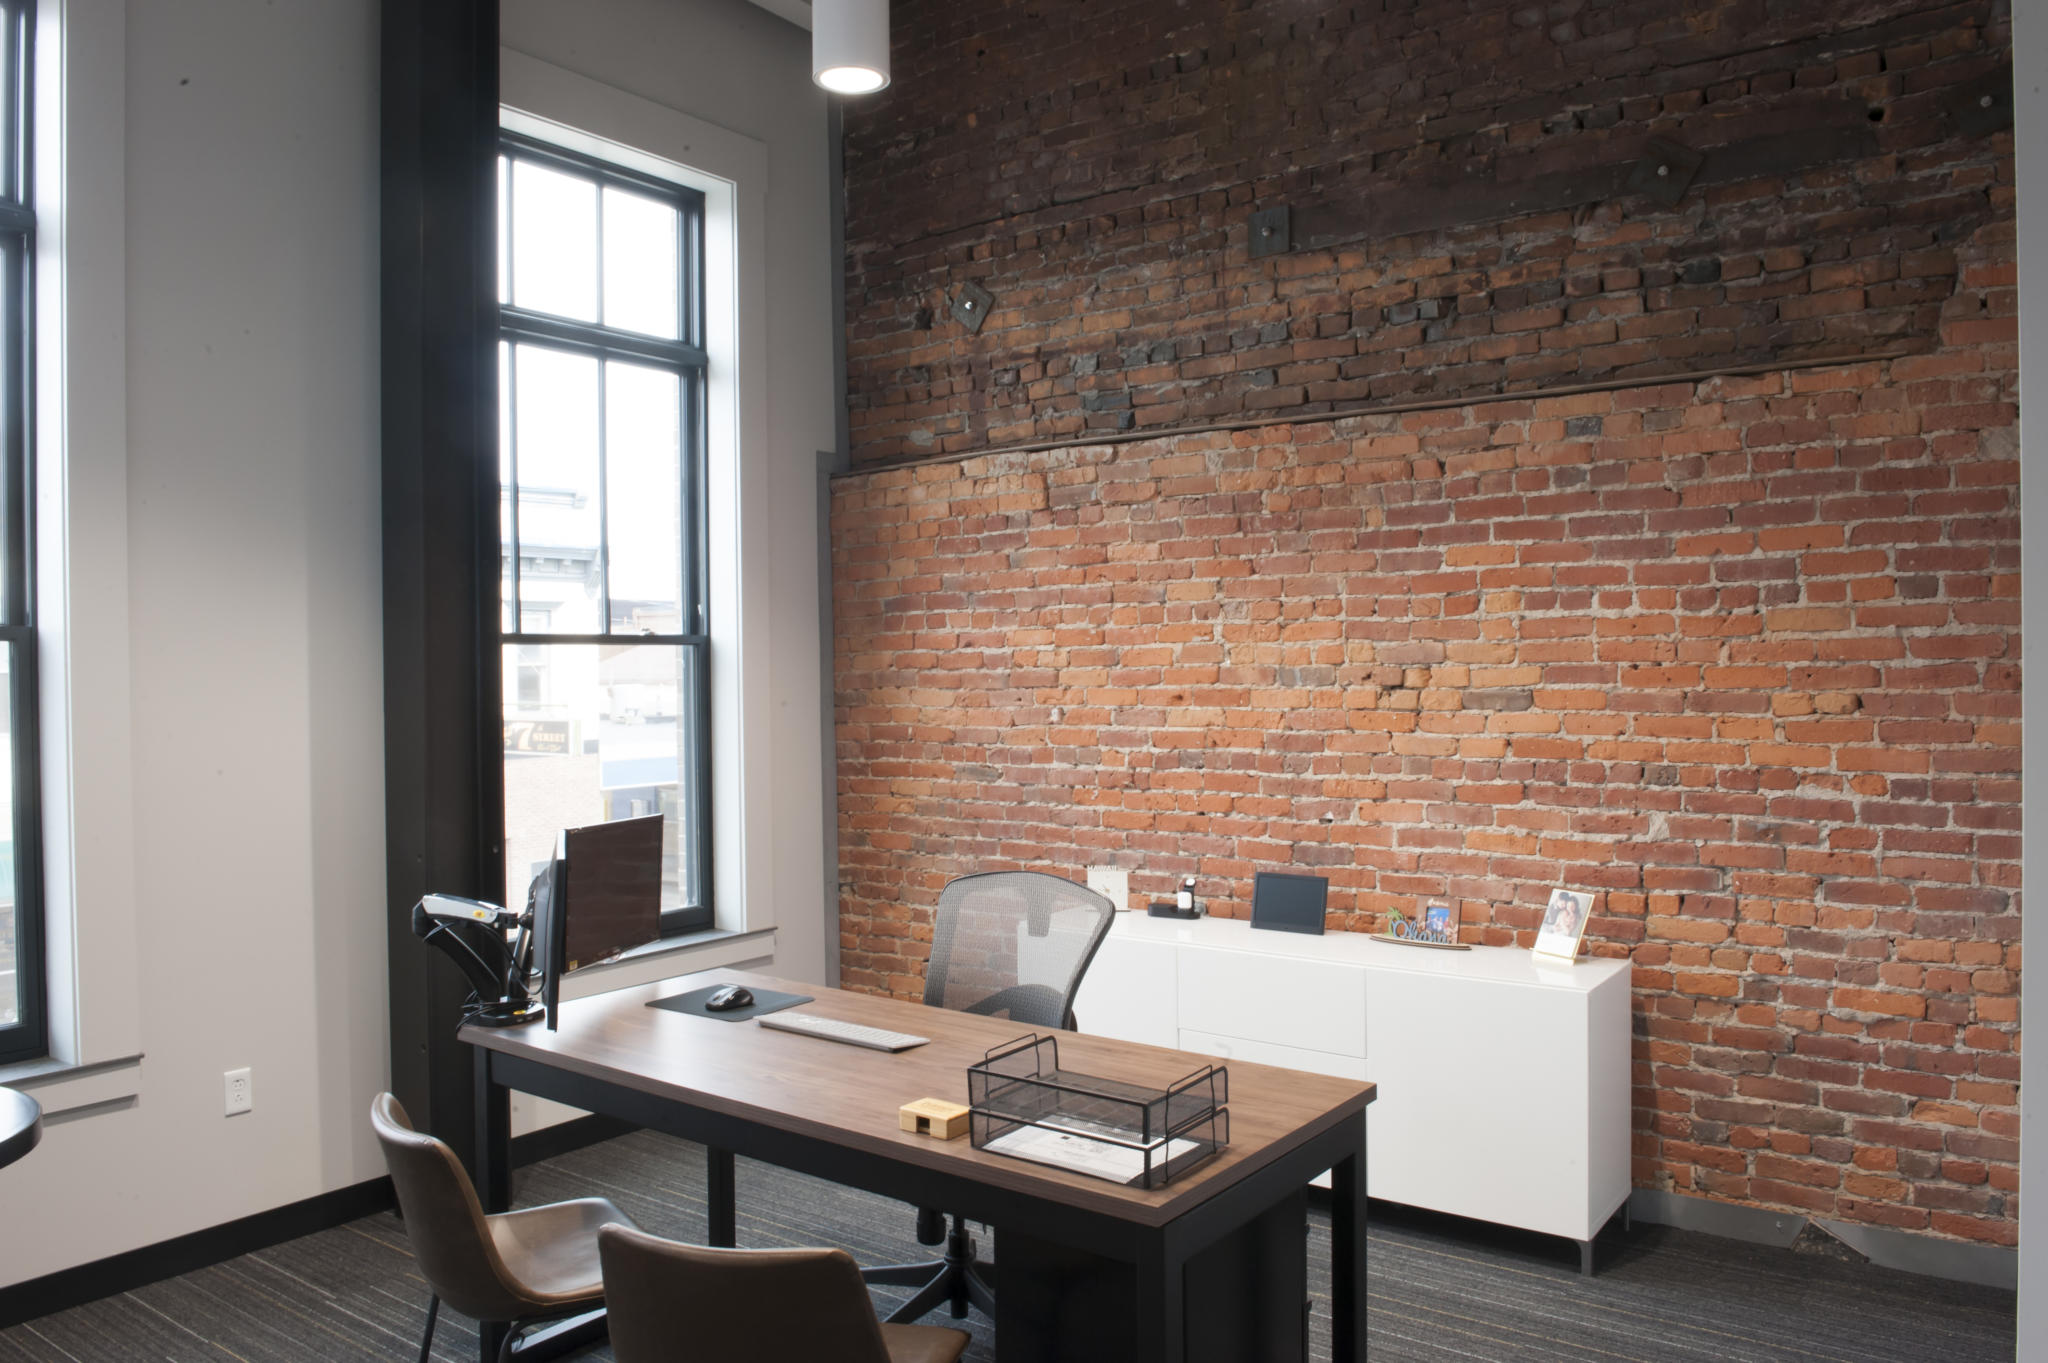 an image of an office with brick walls